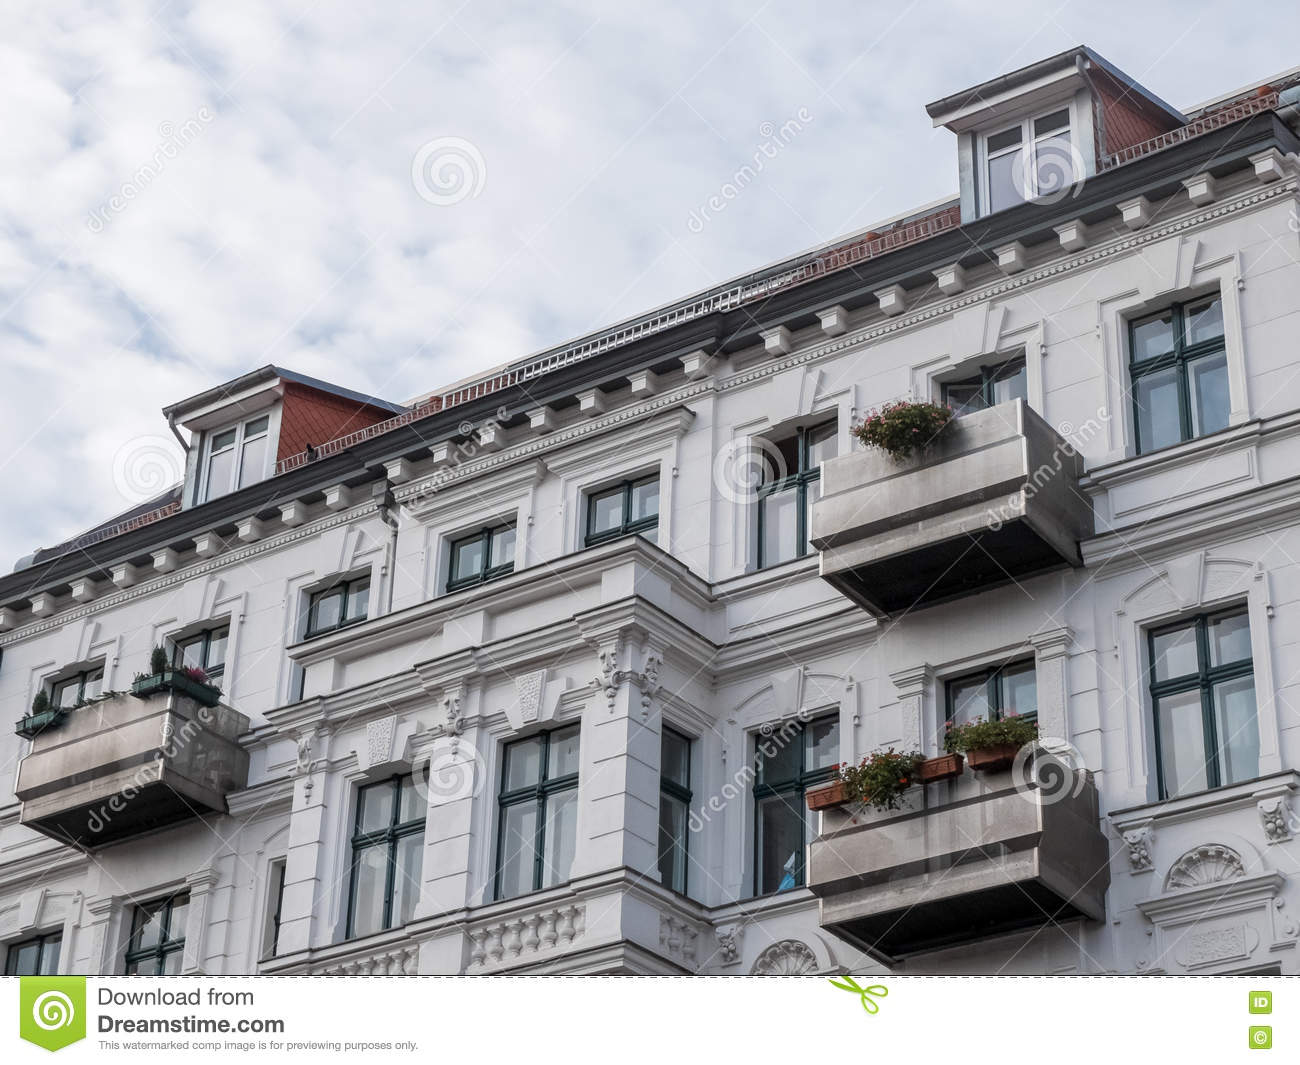 Modern Luxury Apartment Building With Balconies Stock Photo